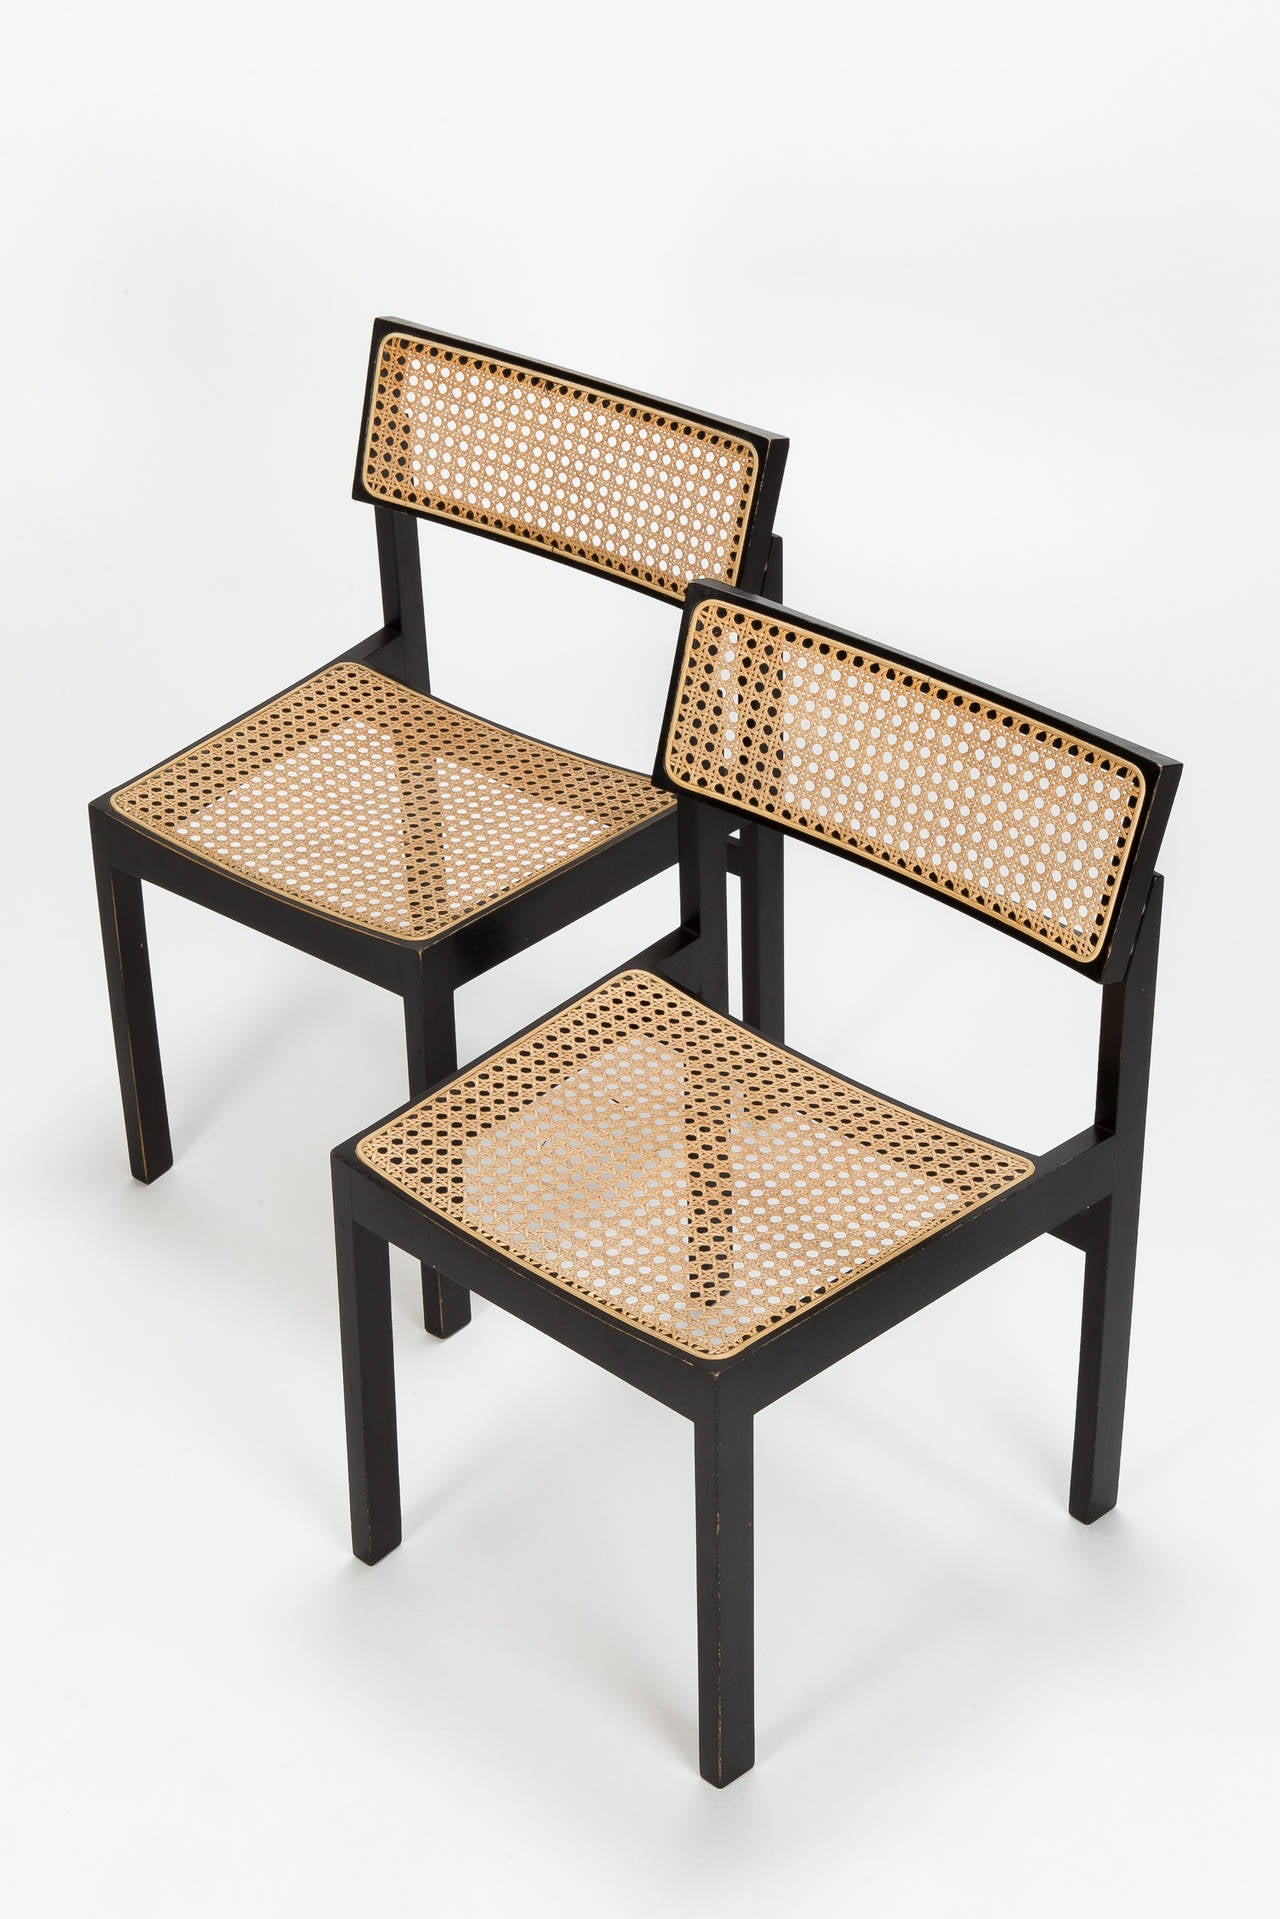 "A very classical pair of Swiss design chairs by Willy Guhl ""The Guhl Chair"" model 3100 for Dietiker, Switzerland in 1959. Stained beech-wood frame and hole to hole caning seat and backrest. Won the price ""die gute Form"" in 1960